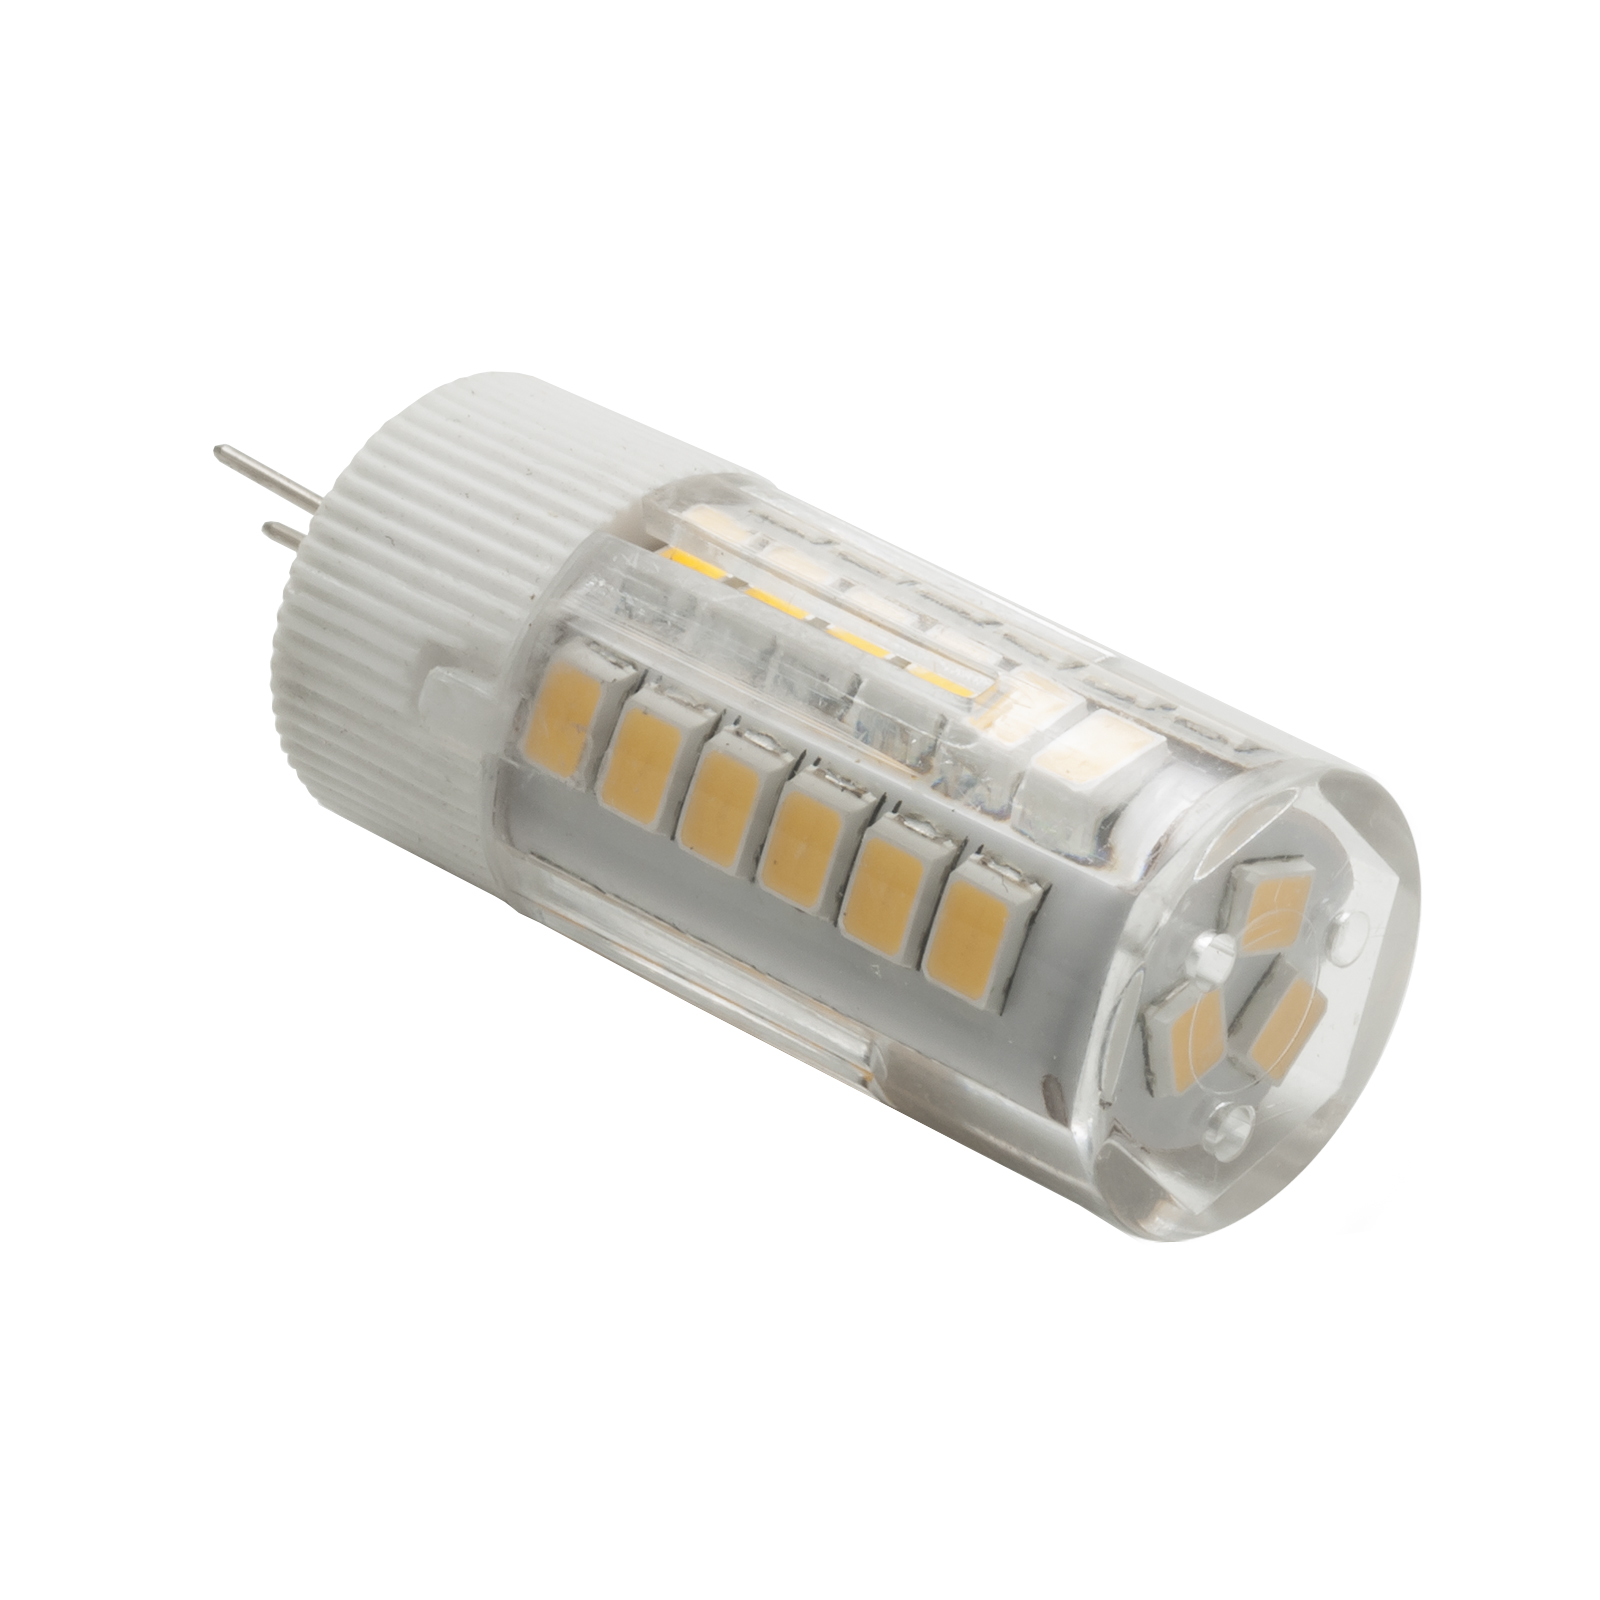 LED bulb attack G4 pin high brightness 5W warm light 3000k yield 40W 12V